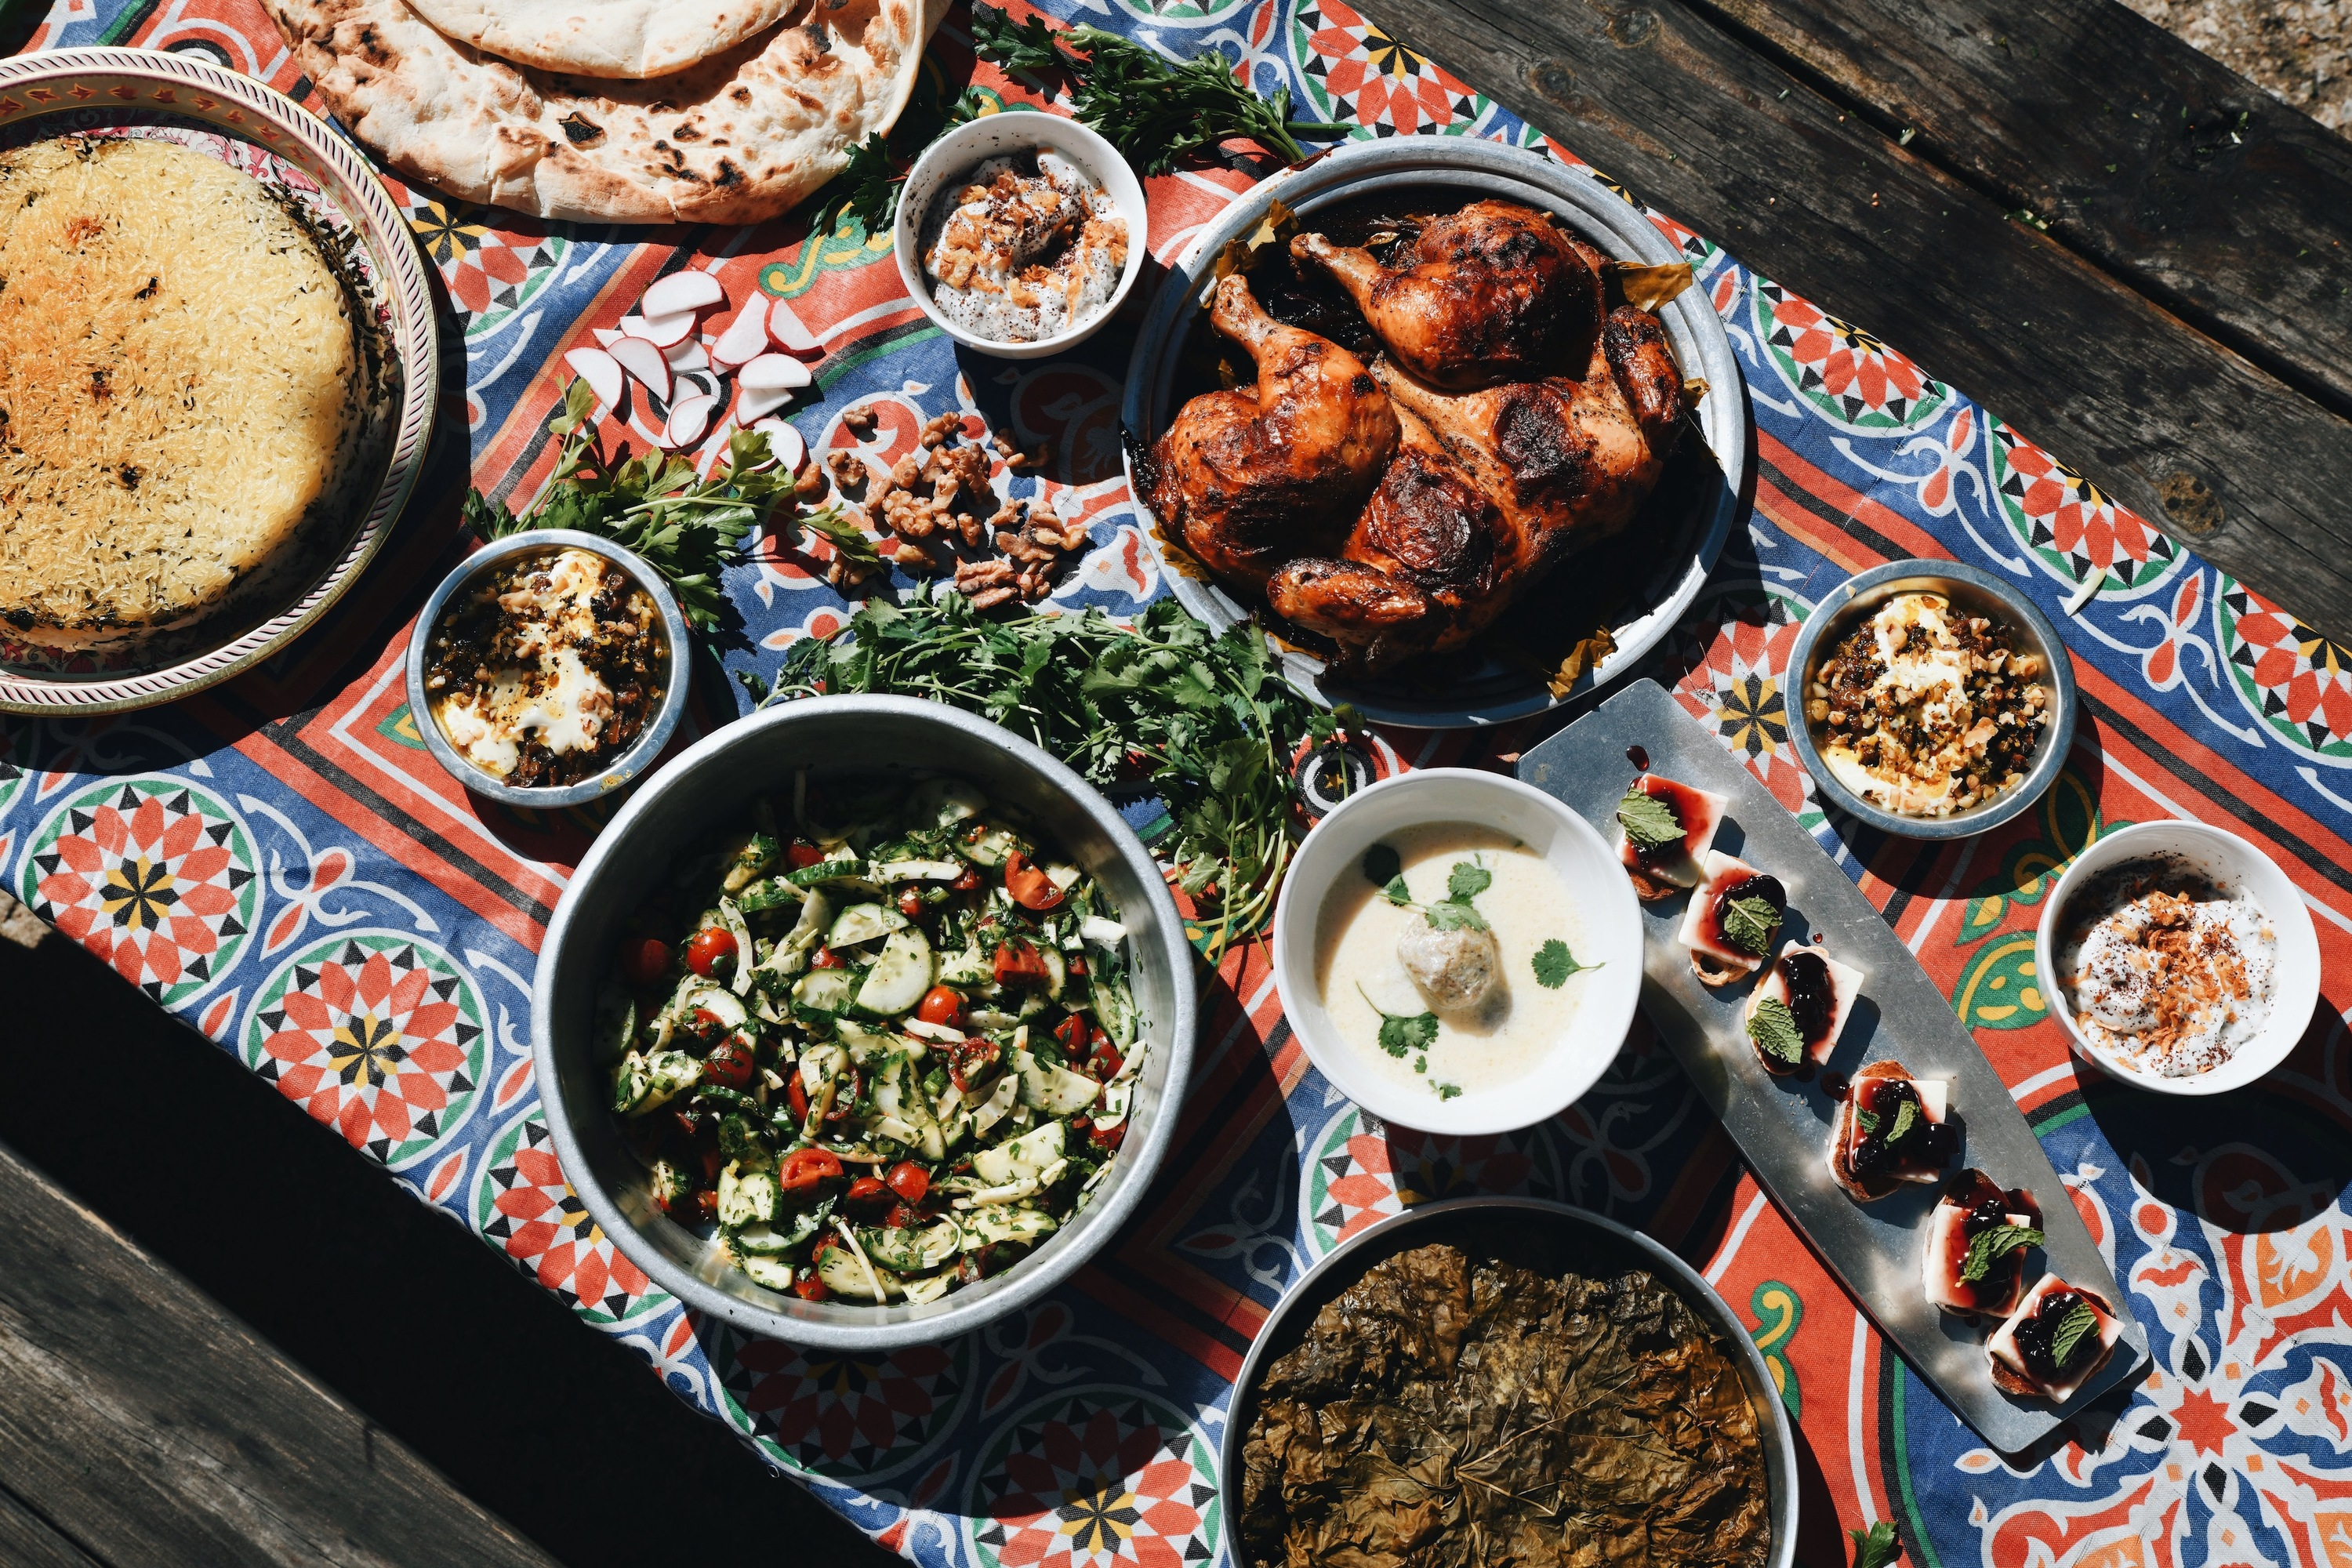 A local musician is making ends meet by cooking Persian and Armenian meals